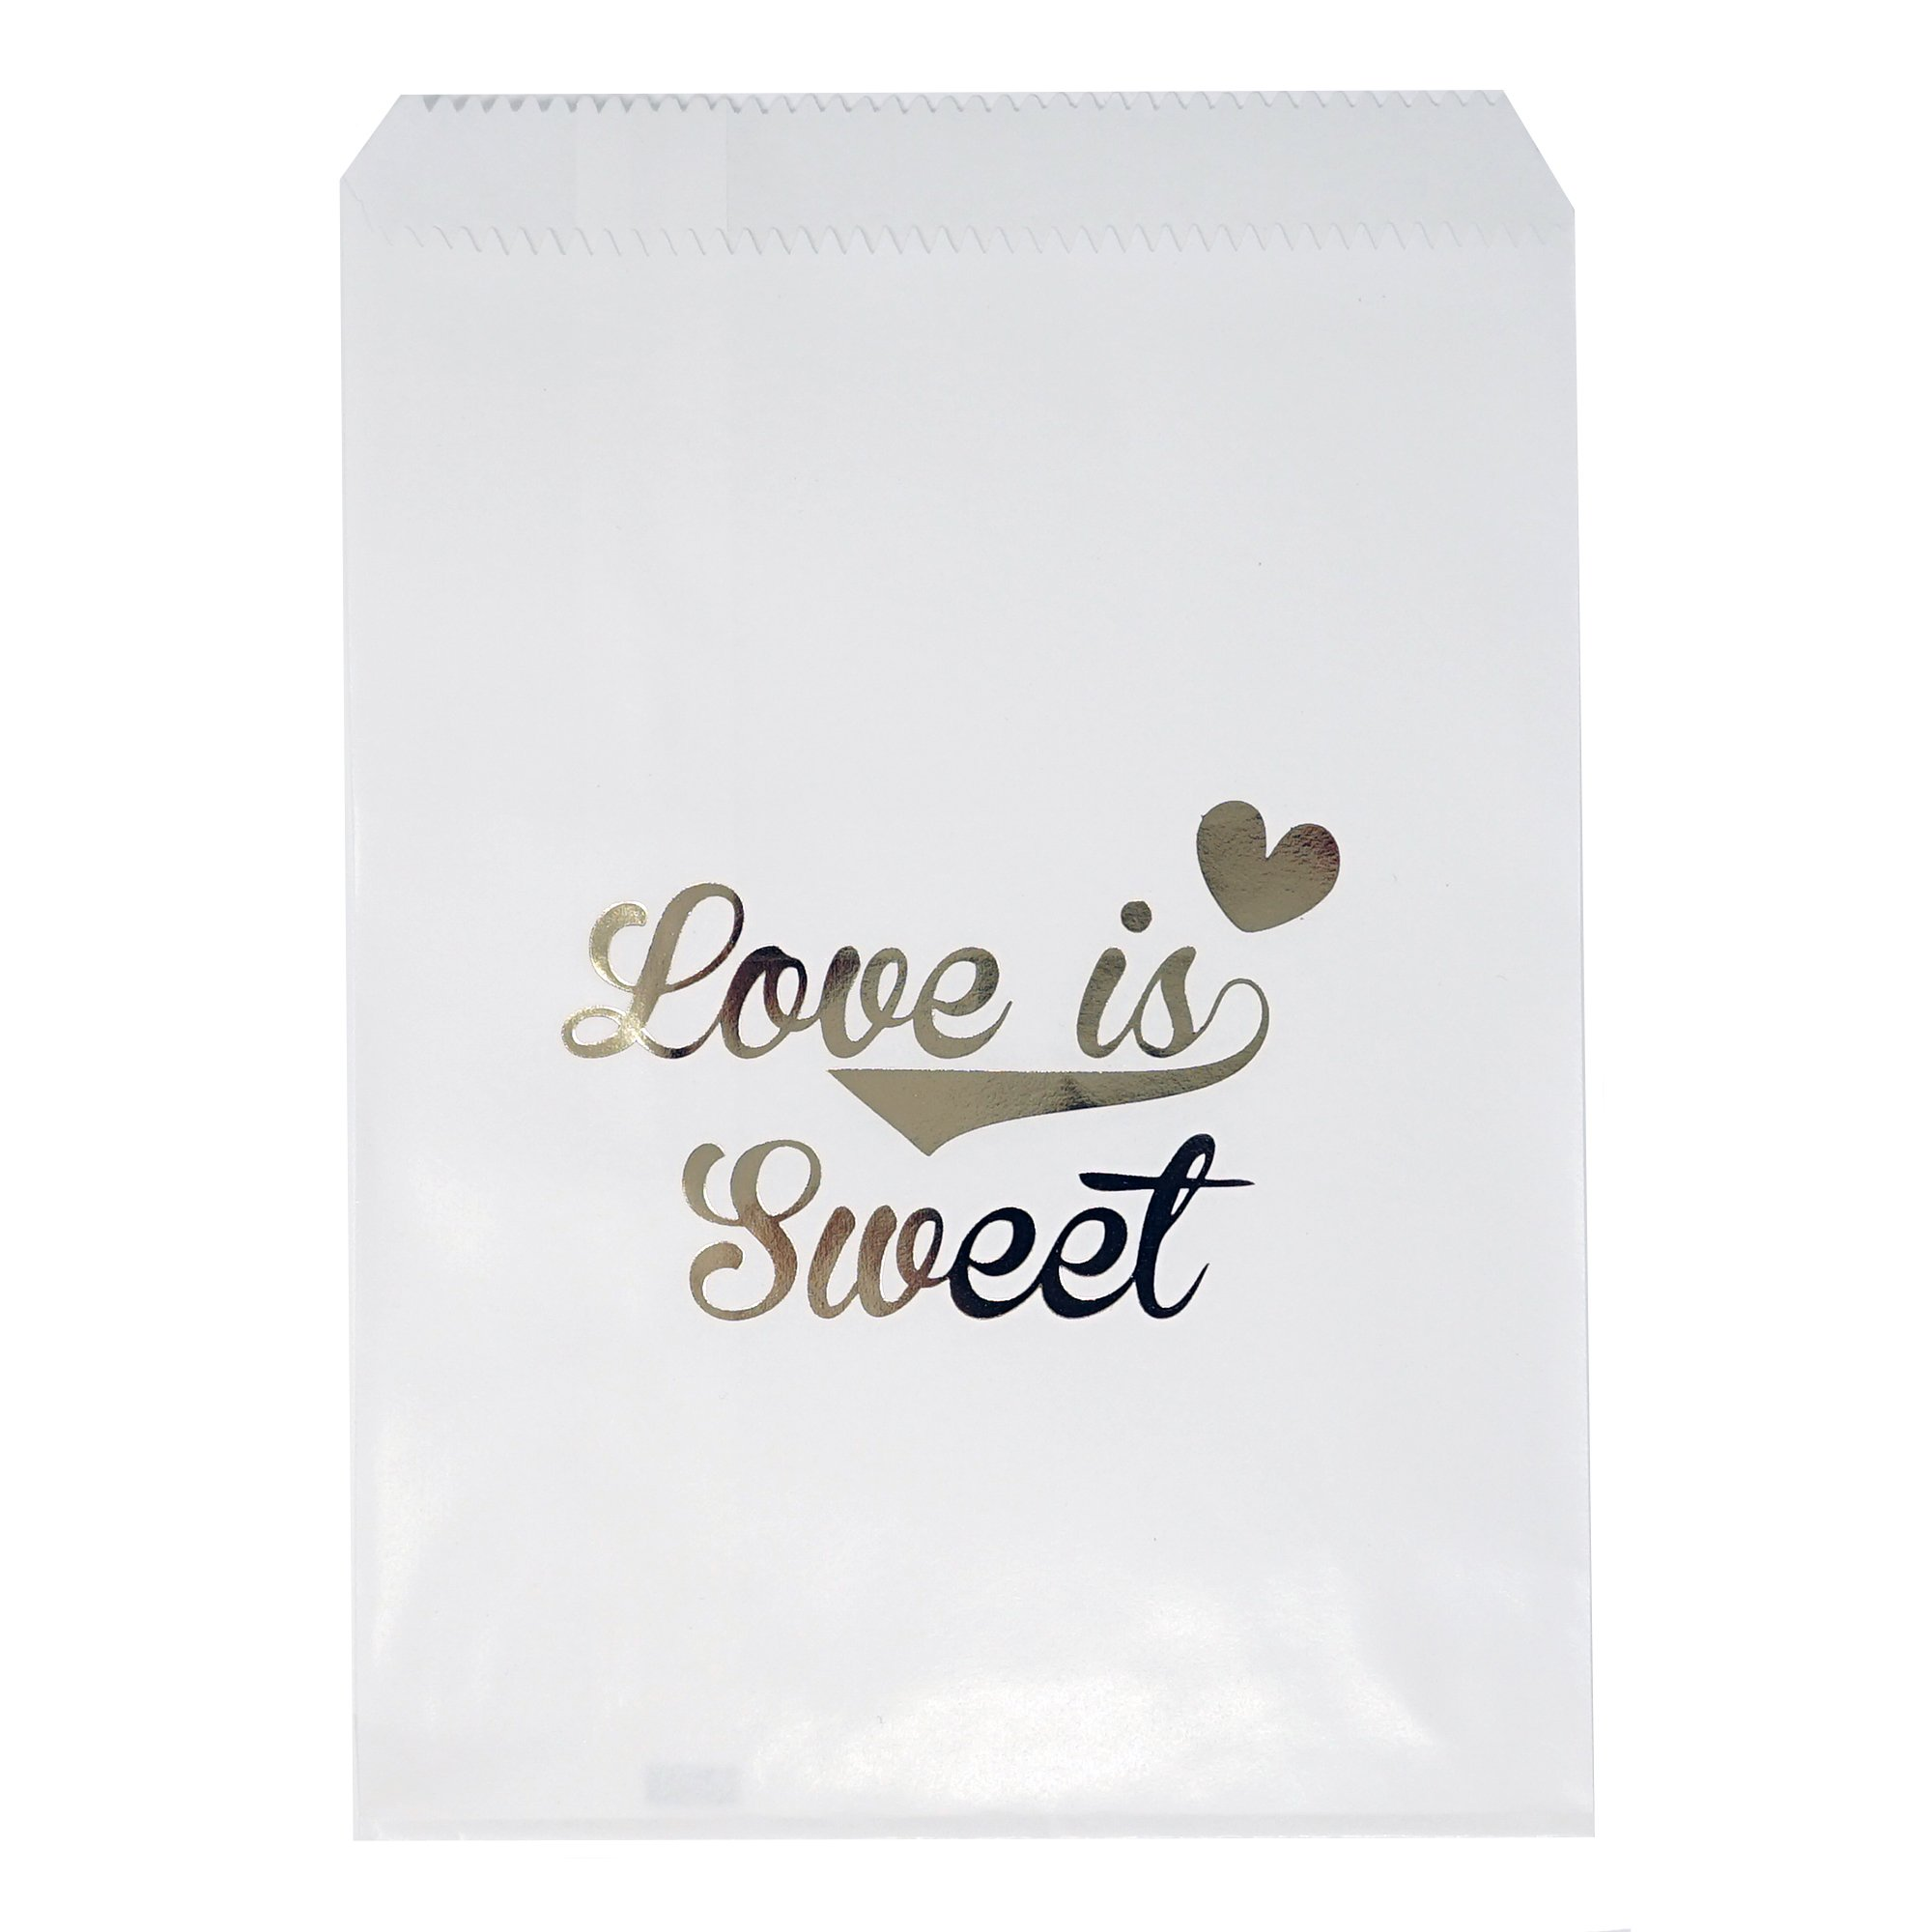 Chloe Elizabeth Food Safe Biodegradable Paper Candy Favor & Treat Bags For All Parties - 48 Count Assorted, 7x5 Size (Love Is Sweet, White & Gold)